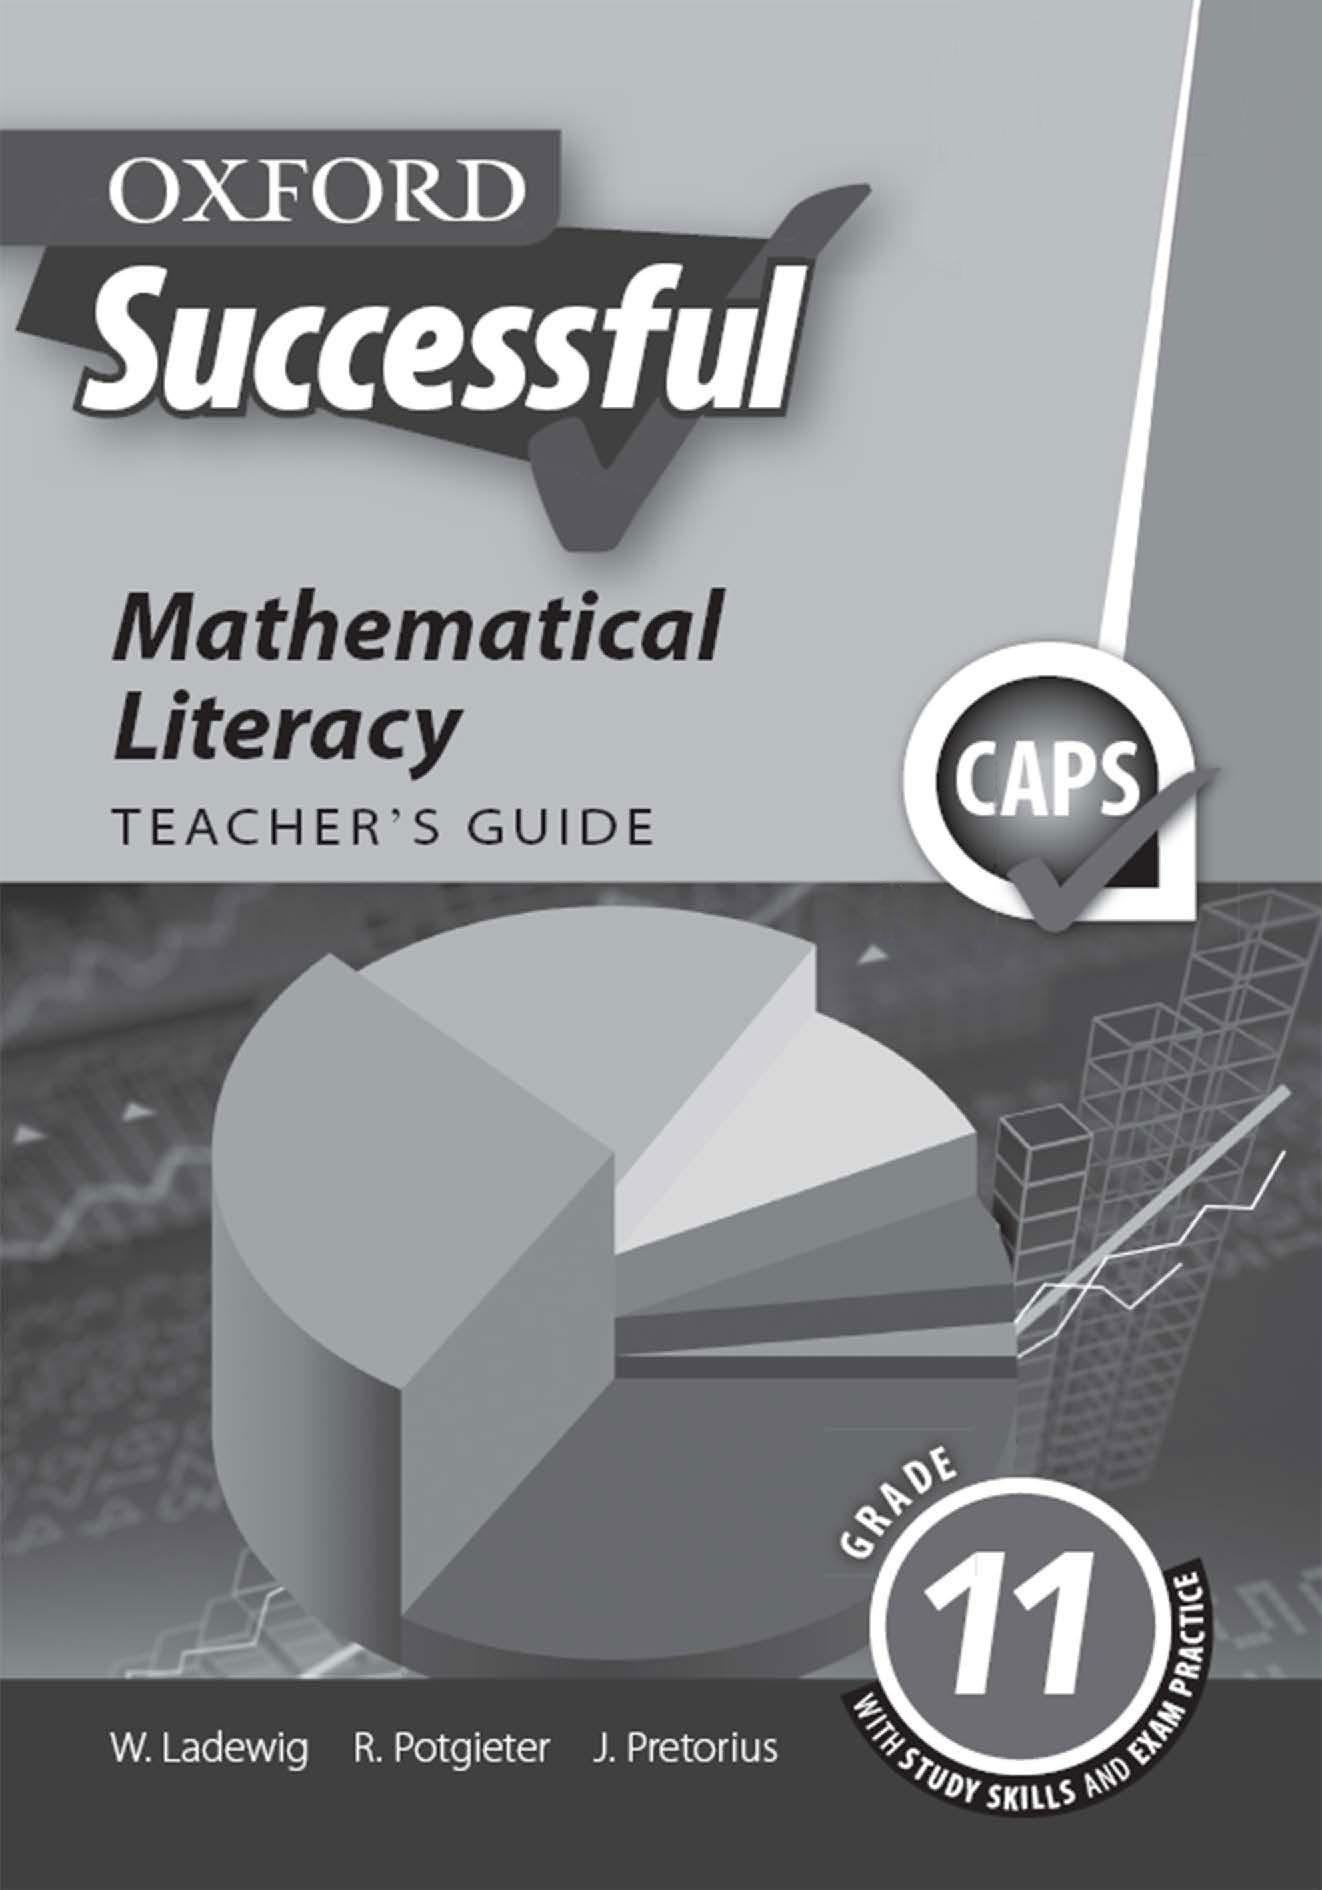 Oxford Successful Mathematical Literacy Grade 11 Teacher's Guide